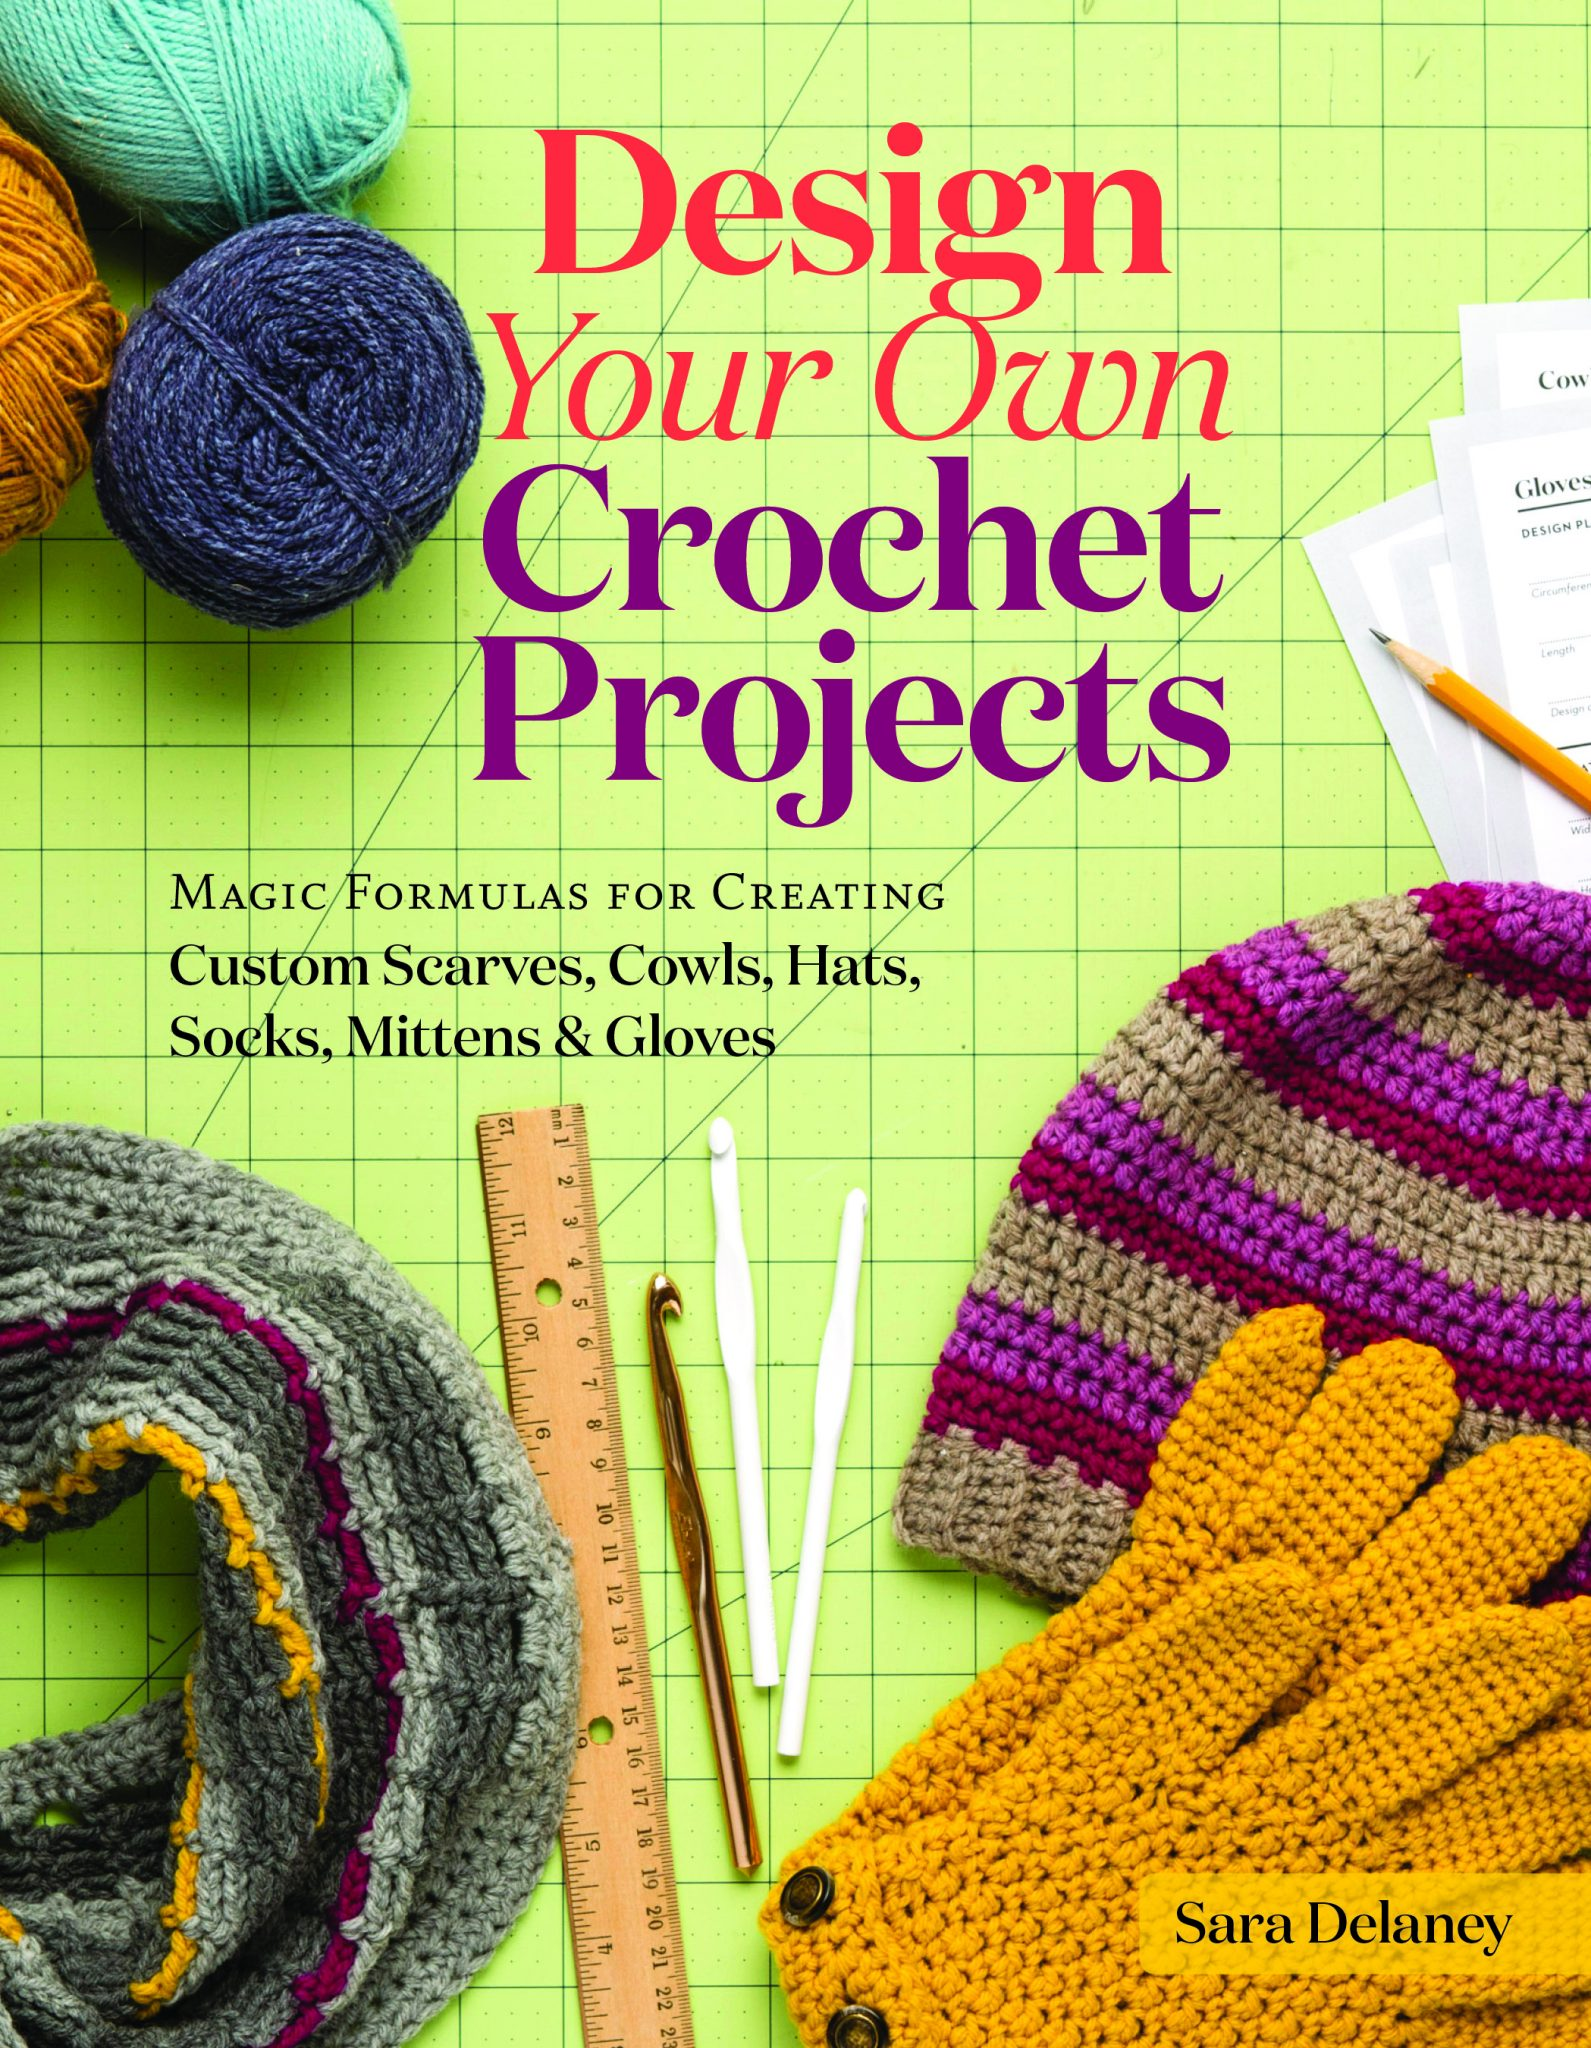 Book Cover Crochet Hook ~ Design your own crochet projects book review u crochet patterns